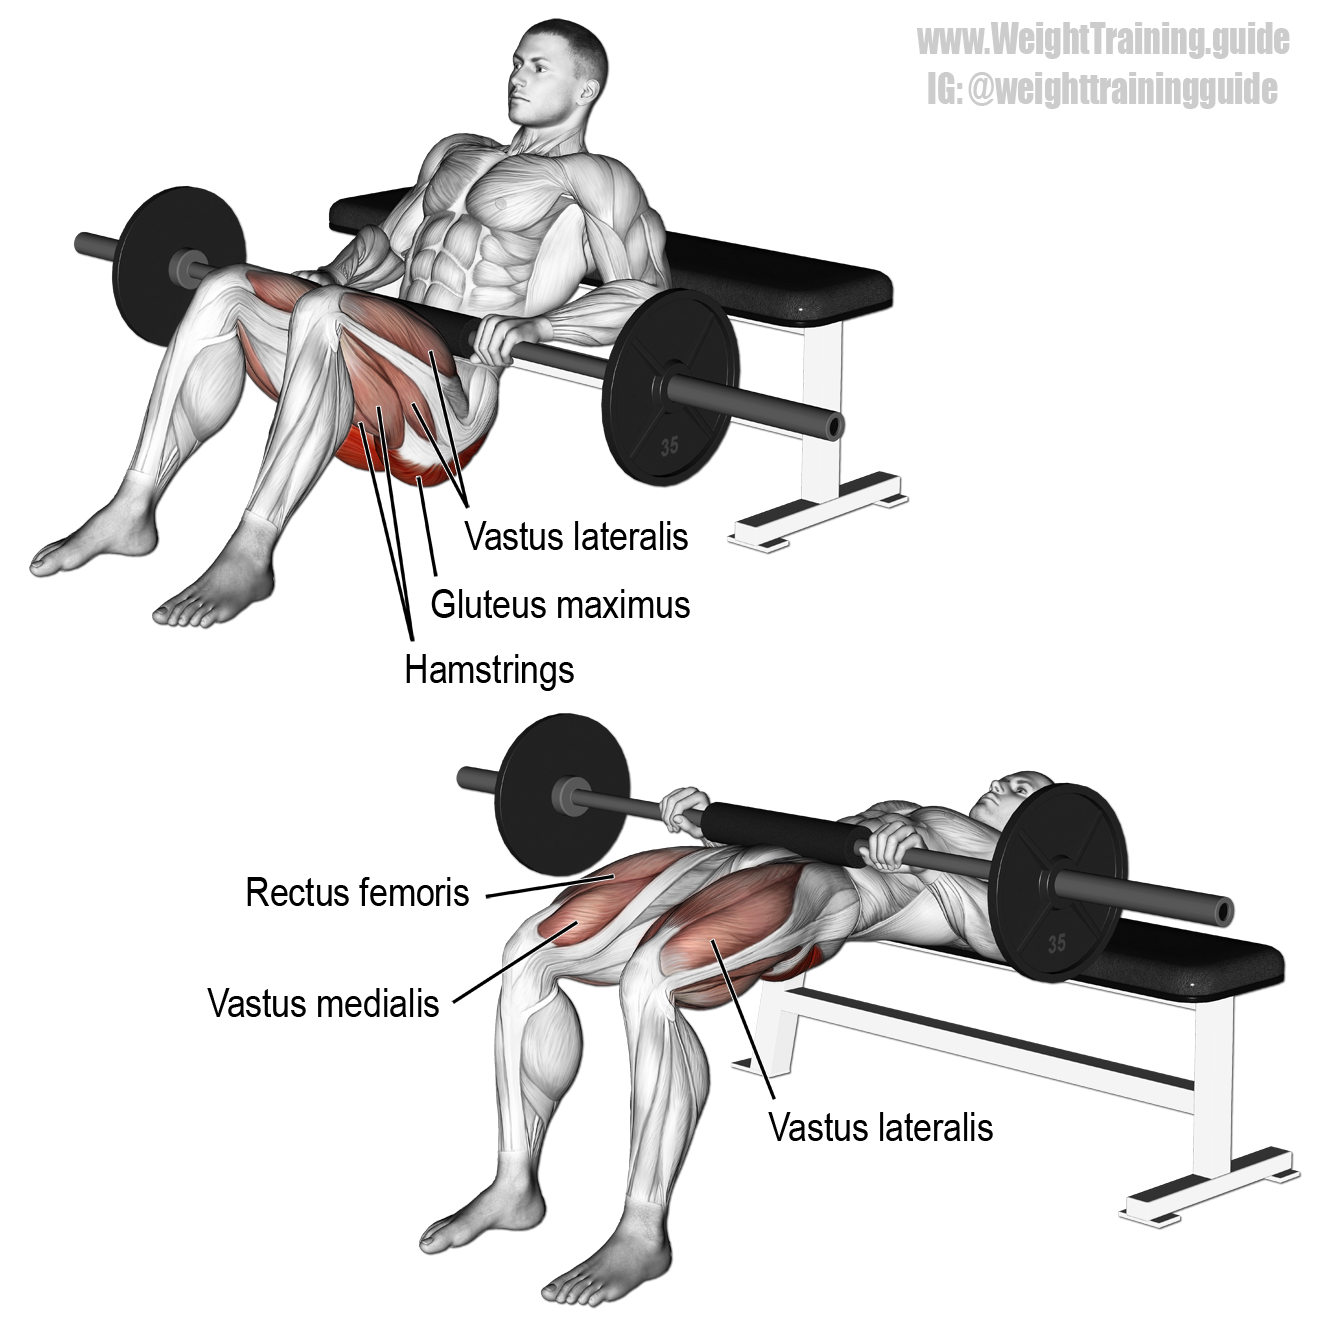 Captains chair leg raise muscles worked - Captain S Chair Leg Raise Aka Vertical Bench Leg Raise An Isolation Exercise Target Muscles Iliopsoas Synergists Tensor Fasciae Latae Sarto